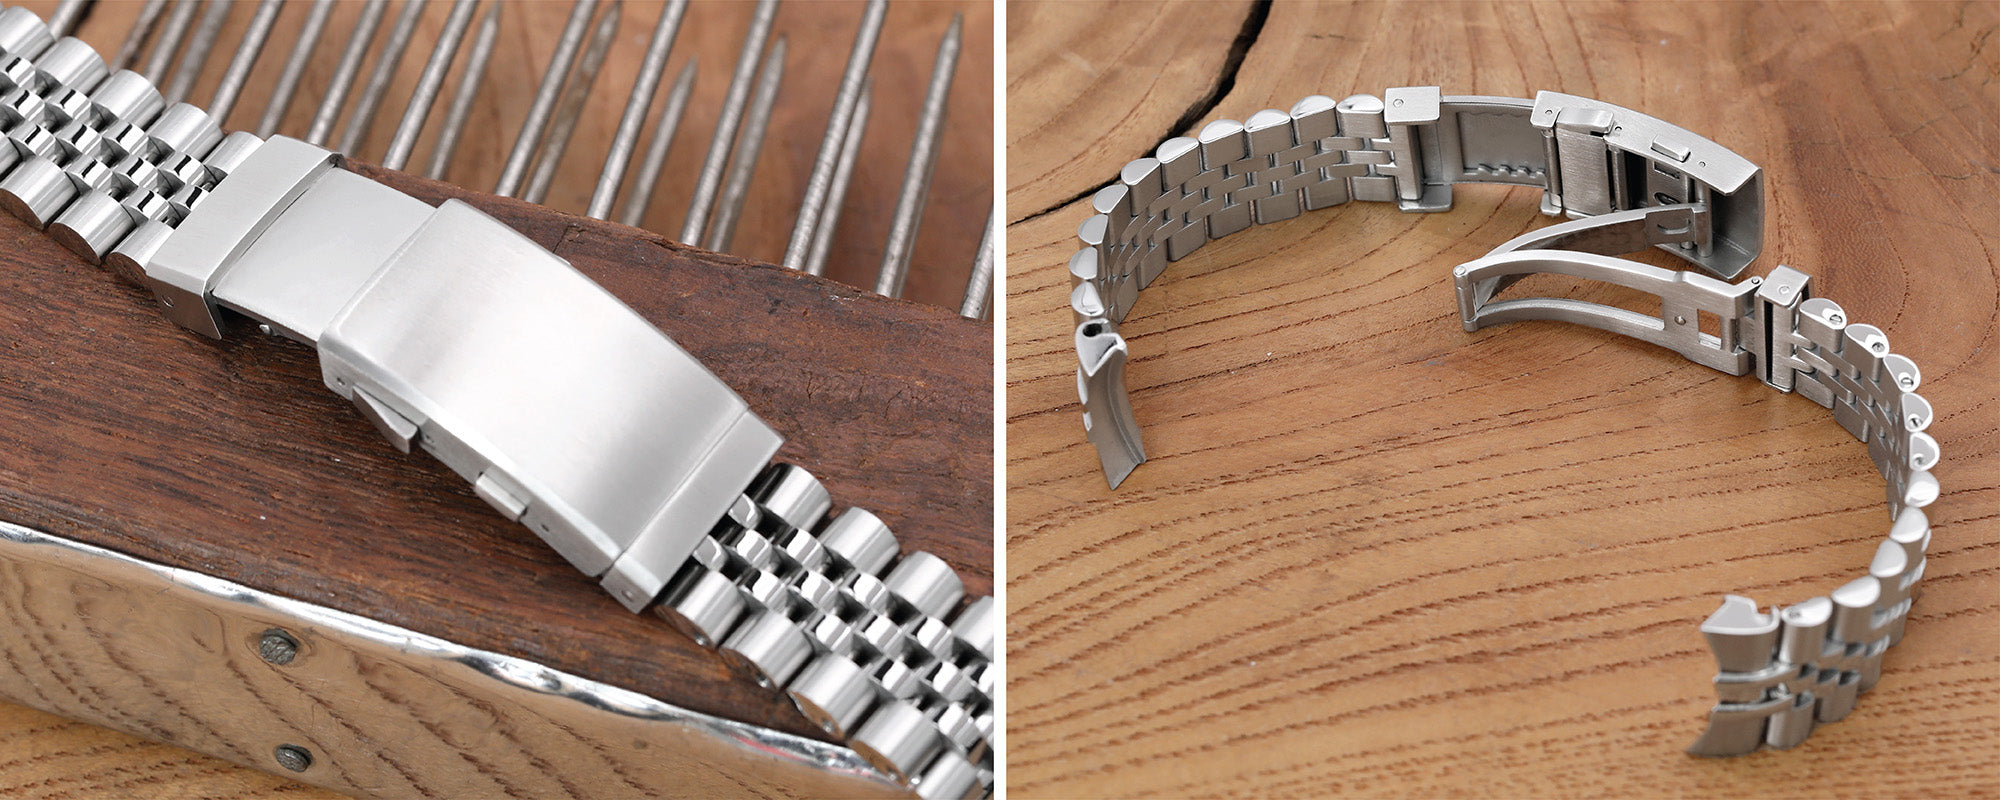 Strapcode watch bands, Wetsuit Ratchet Watch clasp